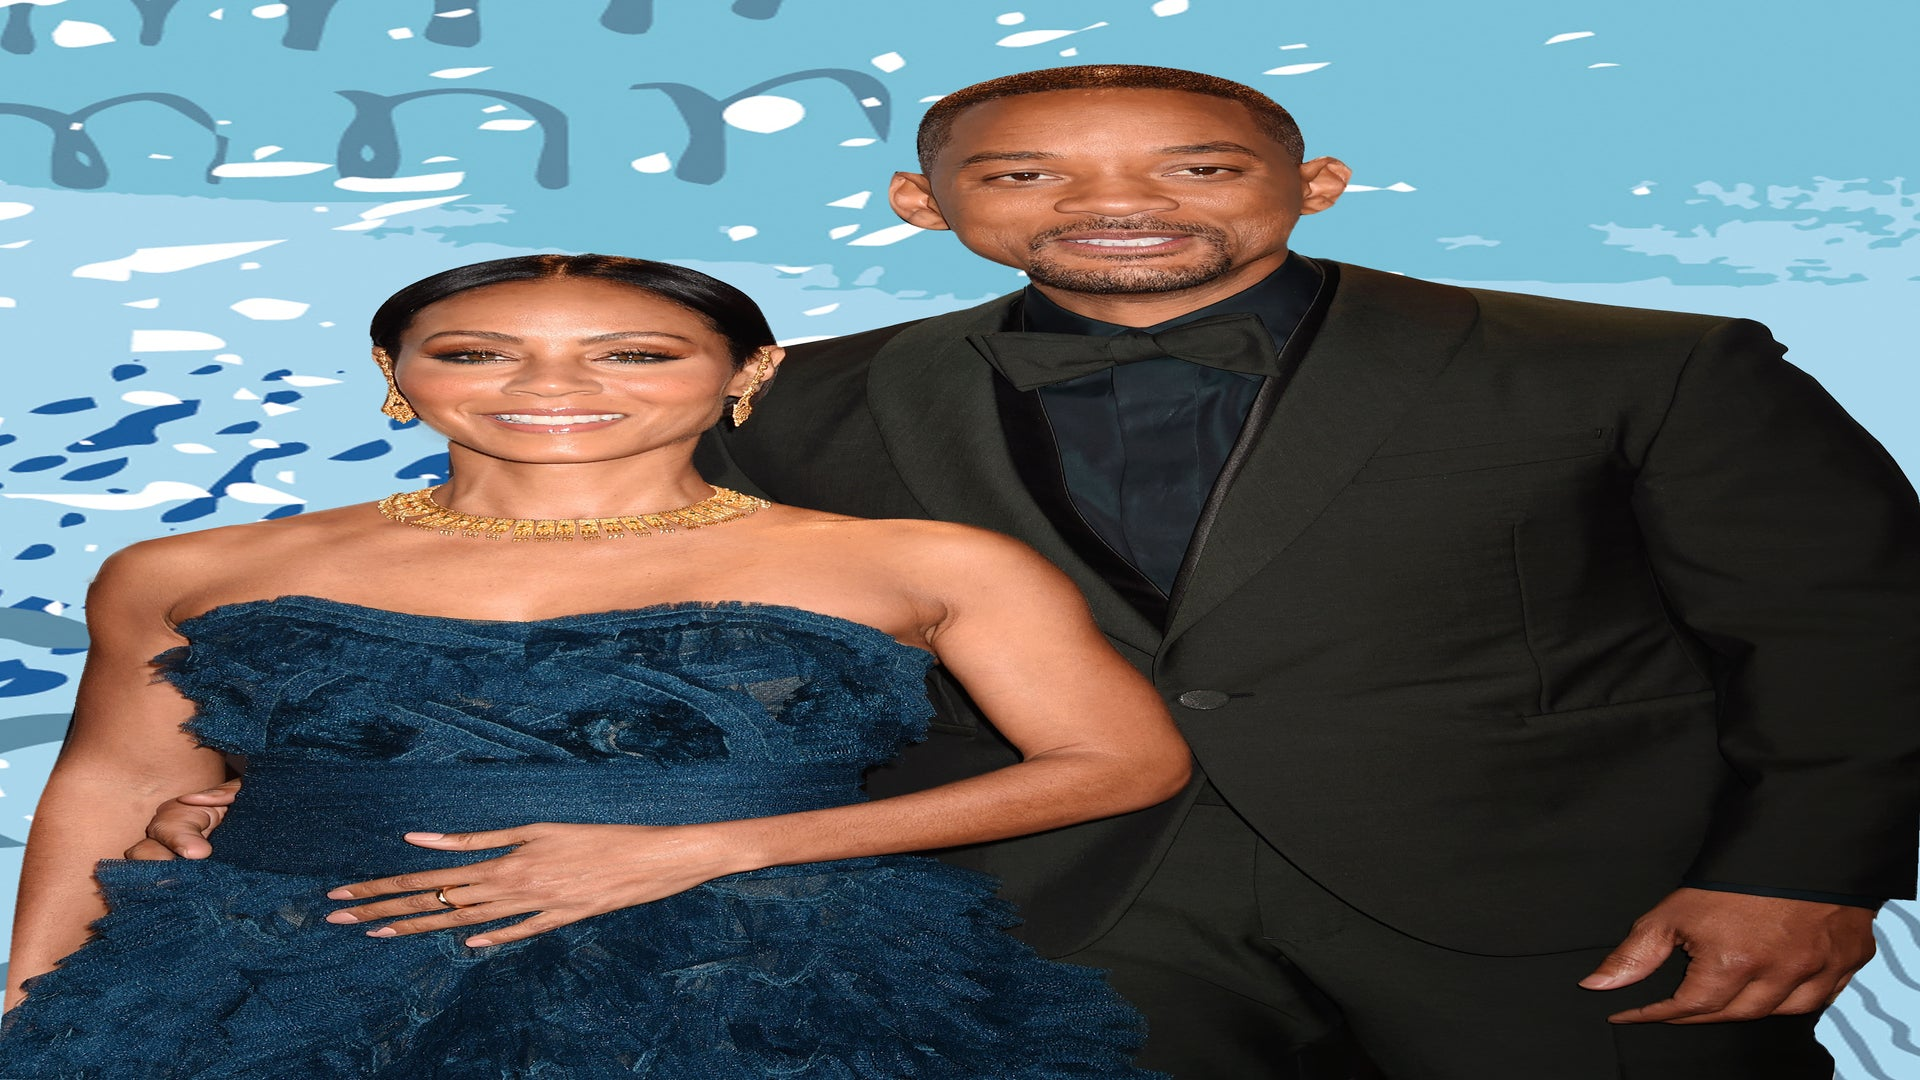 Jada Pinkett Smith Beautifully Explains Why She Should've 'Fell Back' When She Started Dating Will Smith